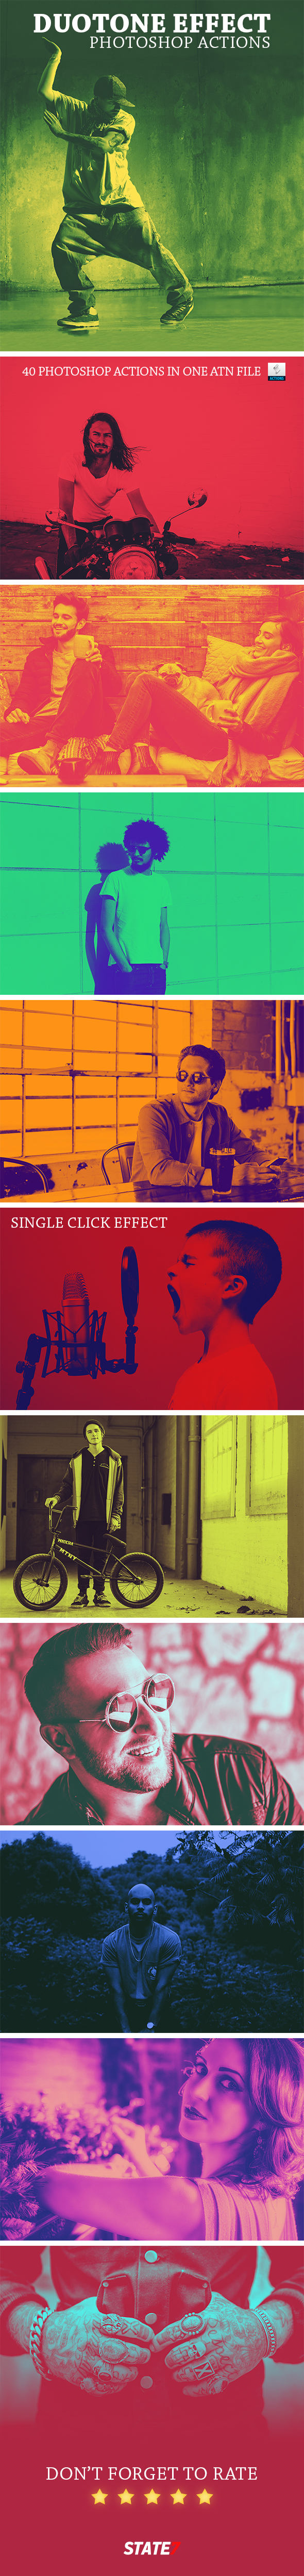 Duotone Photoshop Action - Photo Effects Actions